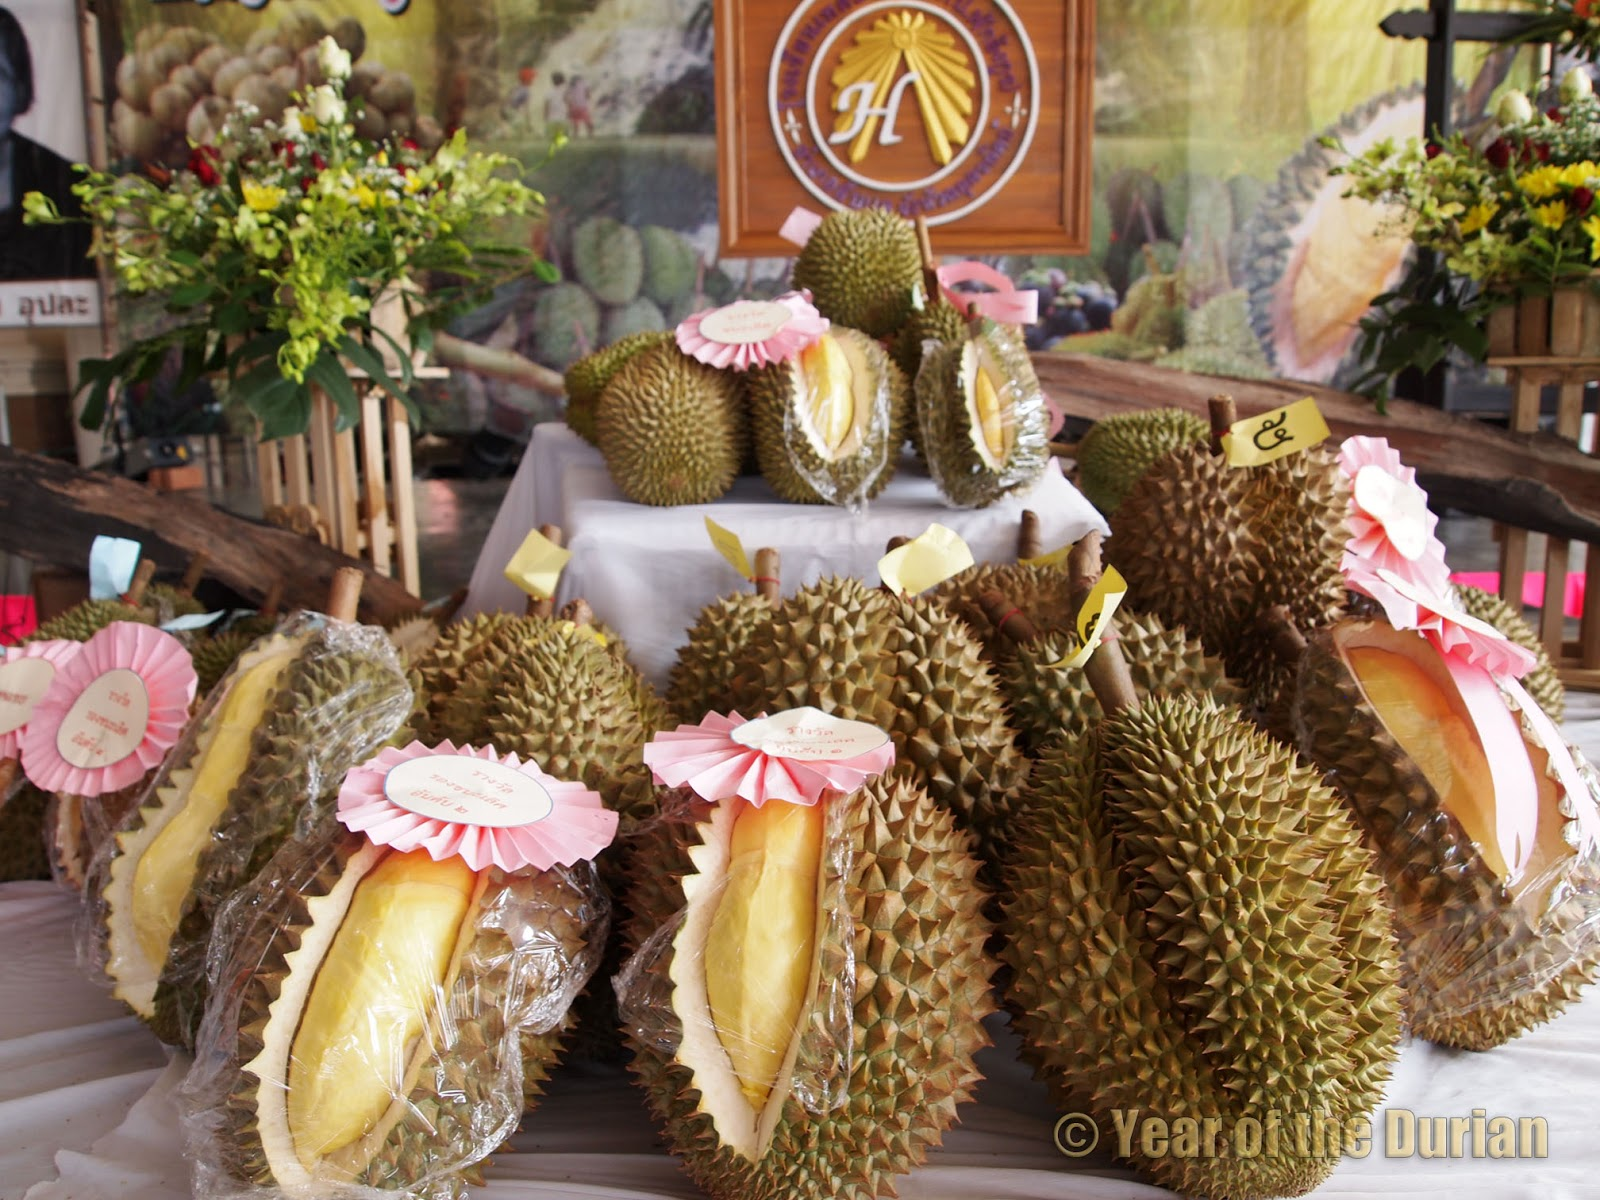 laplae durian festival uttaradit thailand photo essay  laplae durian festival uttaradit thailand photo essay